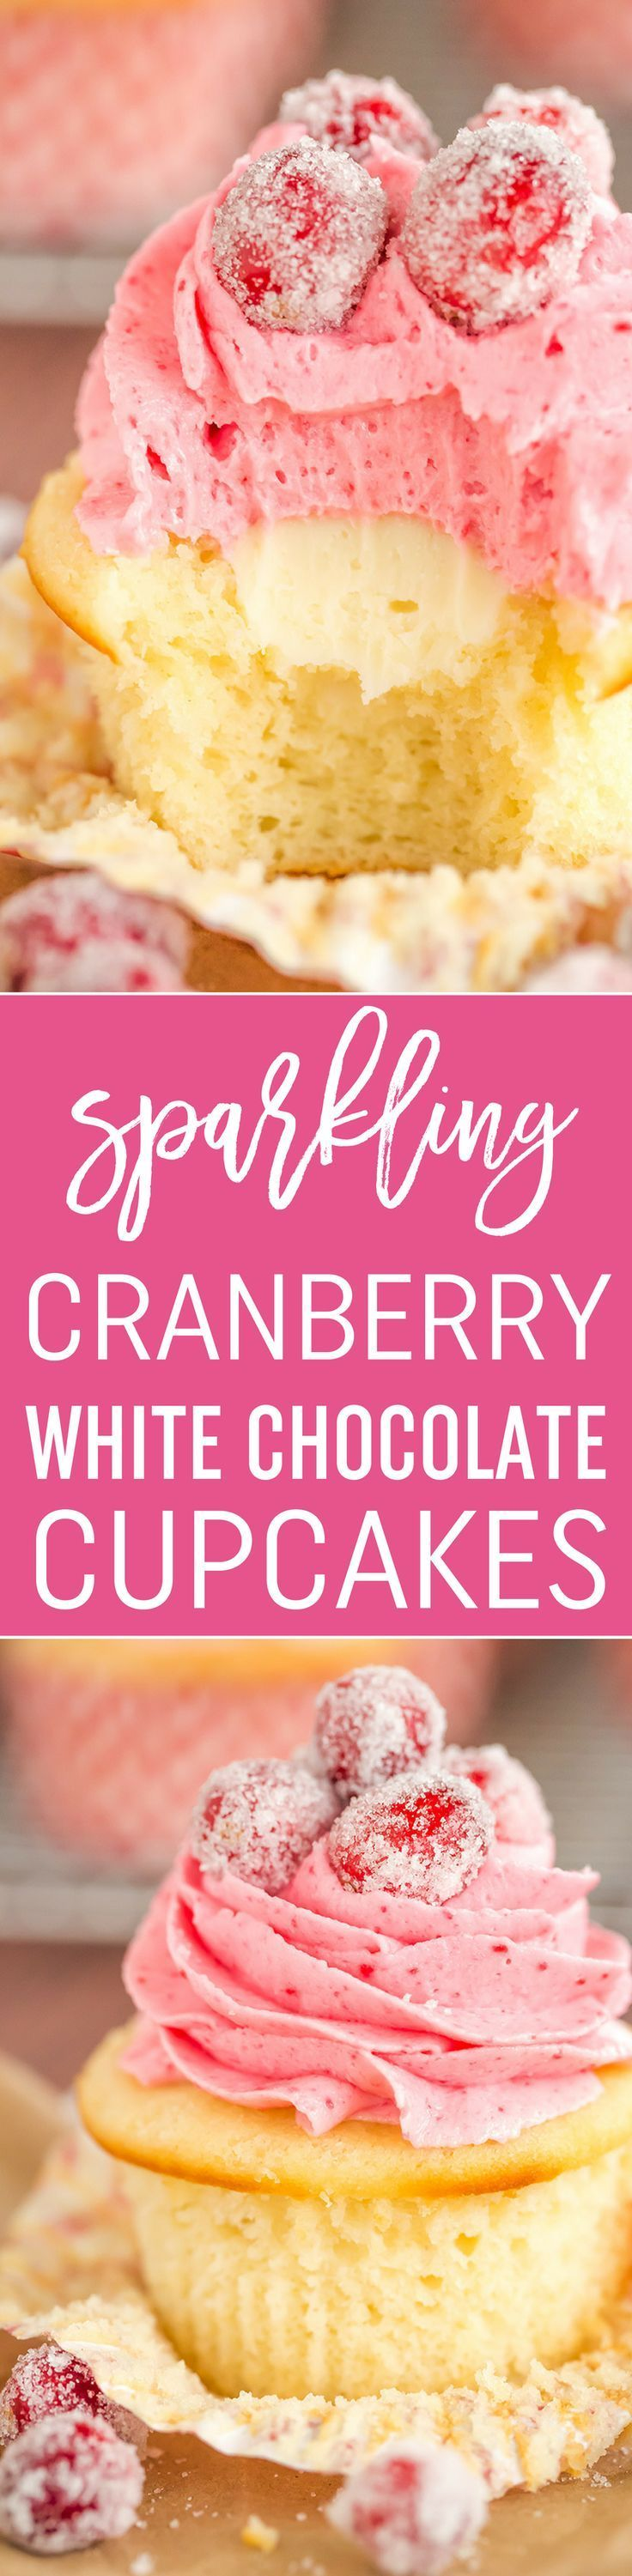 Sparkling Cranberry White Chocolate Cupcakes. Vanilla cupcakes, white chocolate ganache filling, & cranberry frosting. | http://browneyedbaker.com via /browneyedbaker/